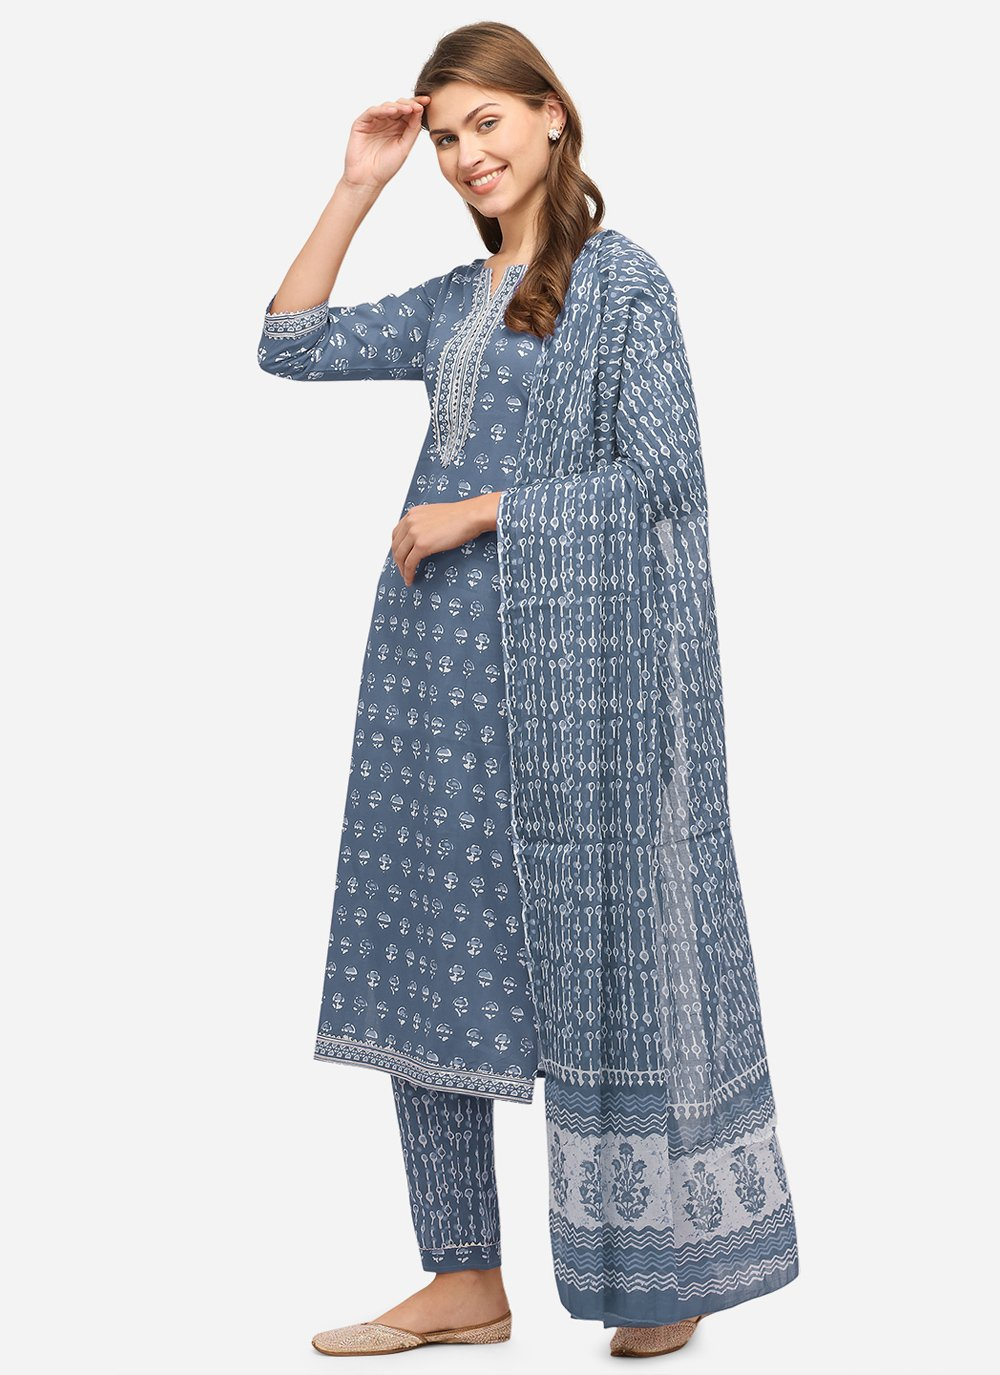 Printed Cotton Grey Readymade Suit